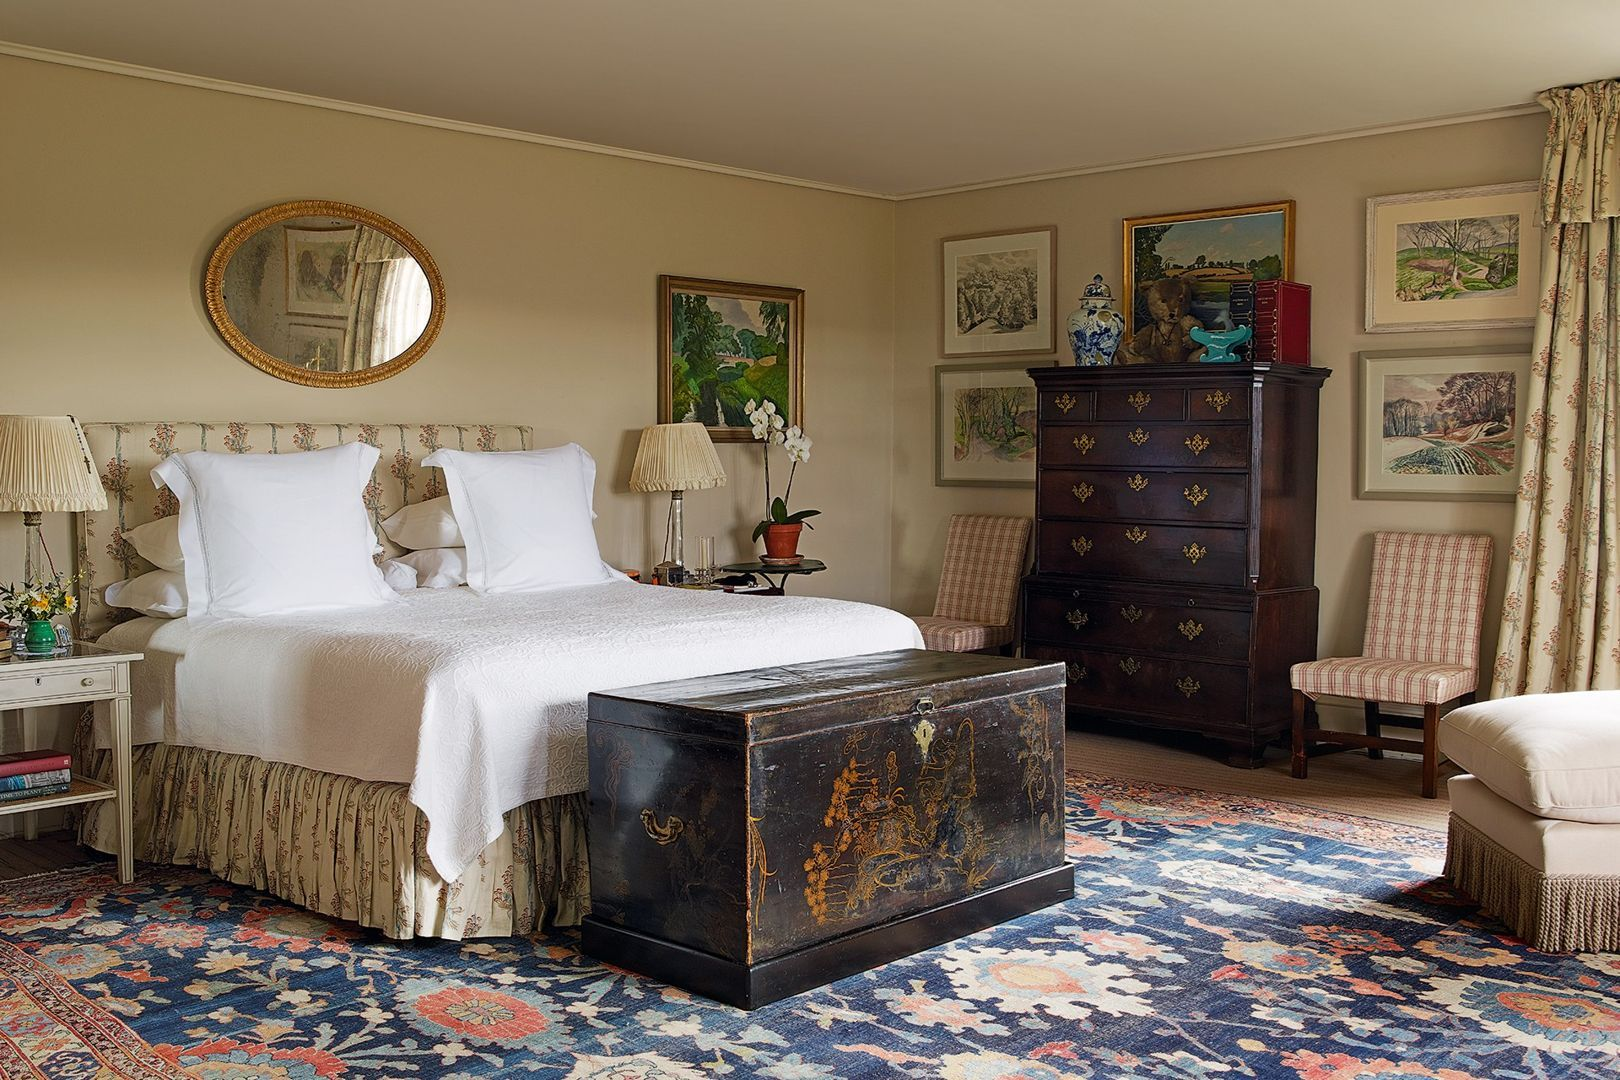 The Key Characteristics of a Traditional English Bedroom